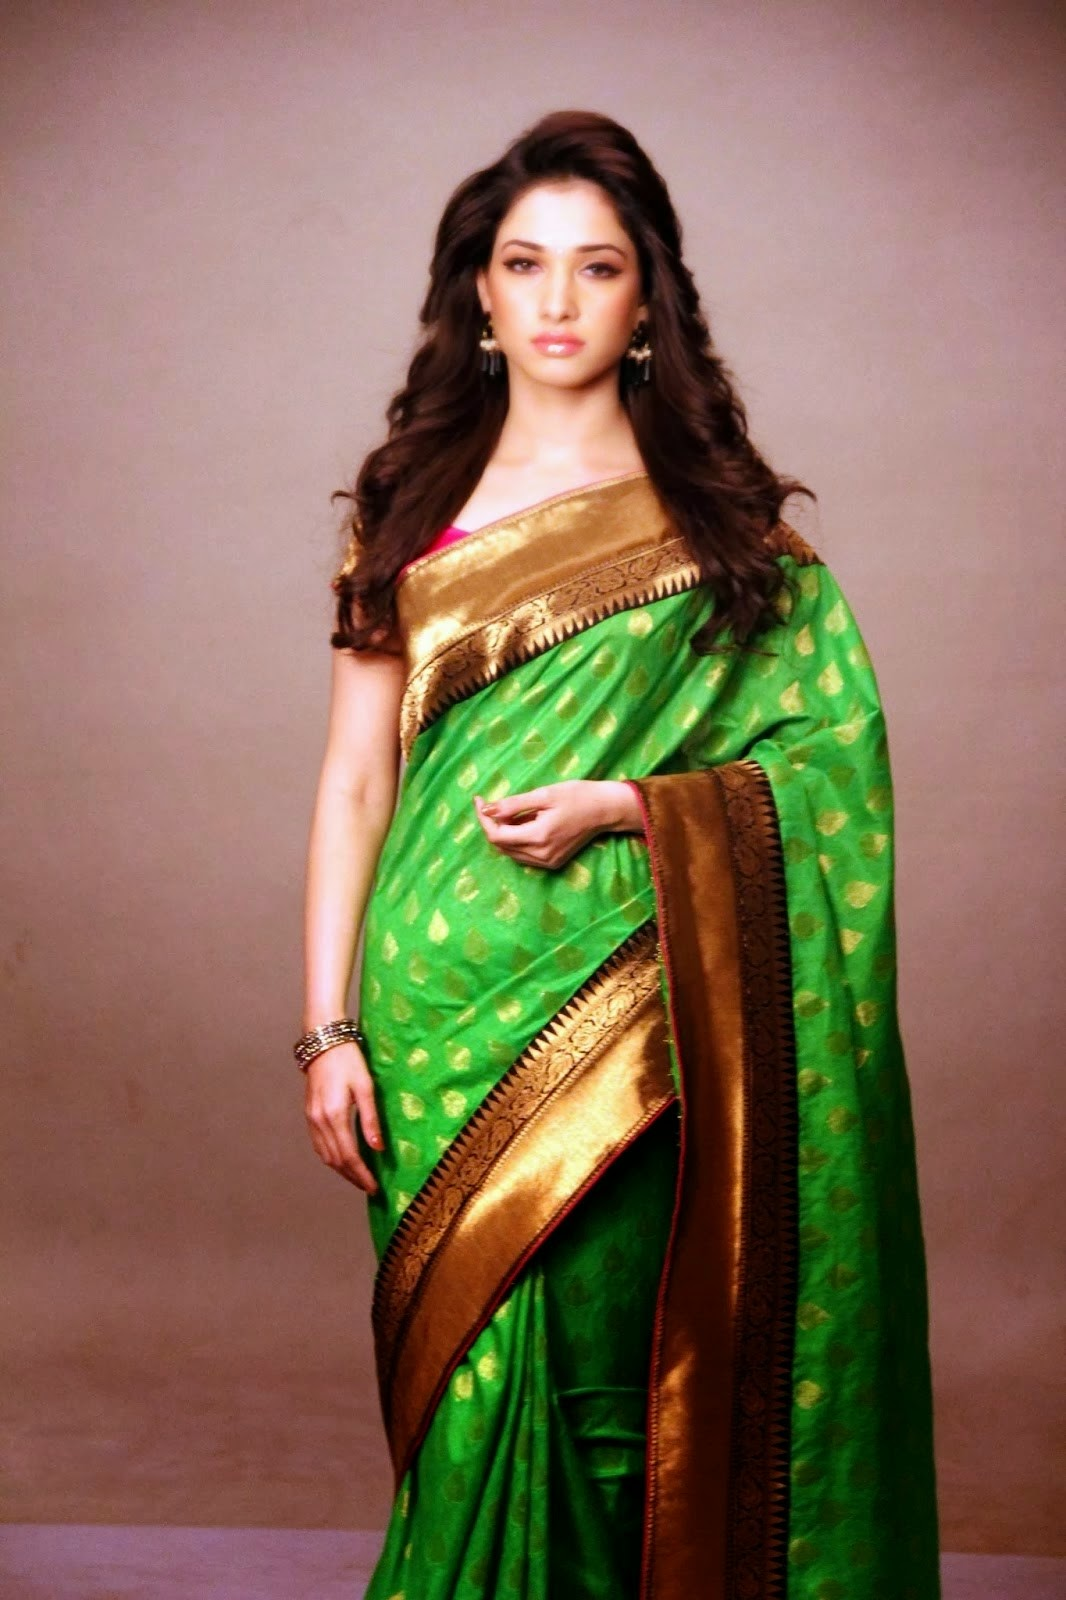 Tamannaah Bhatia Hot Hip Show Photos In Green Saree